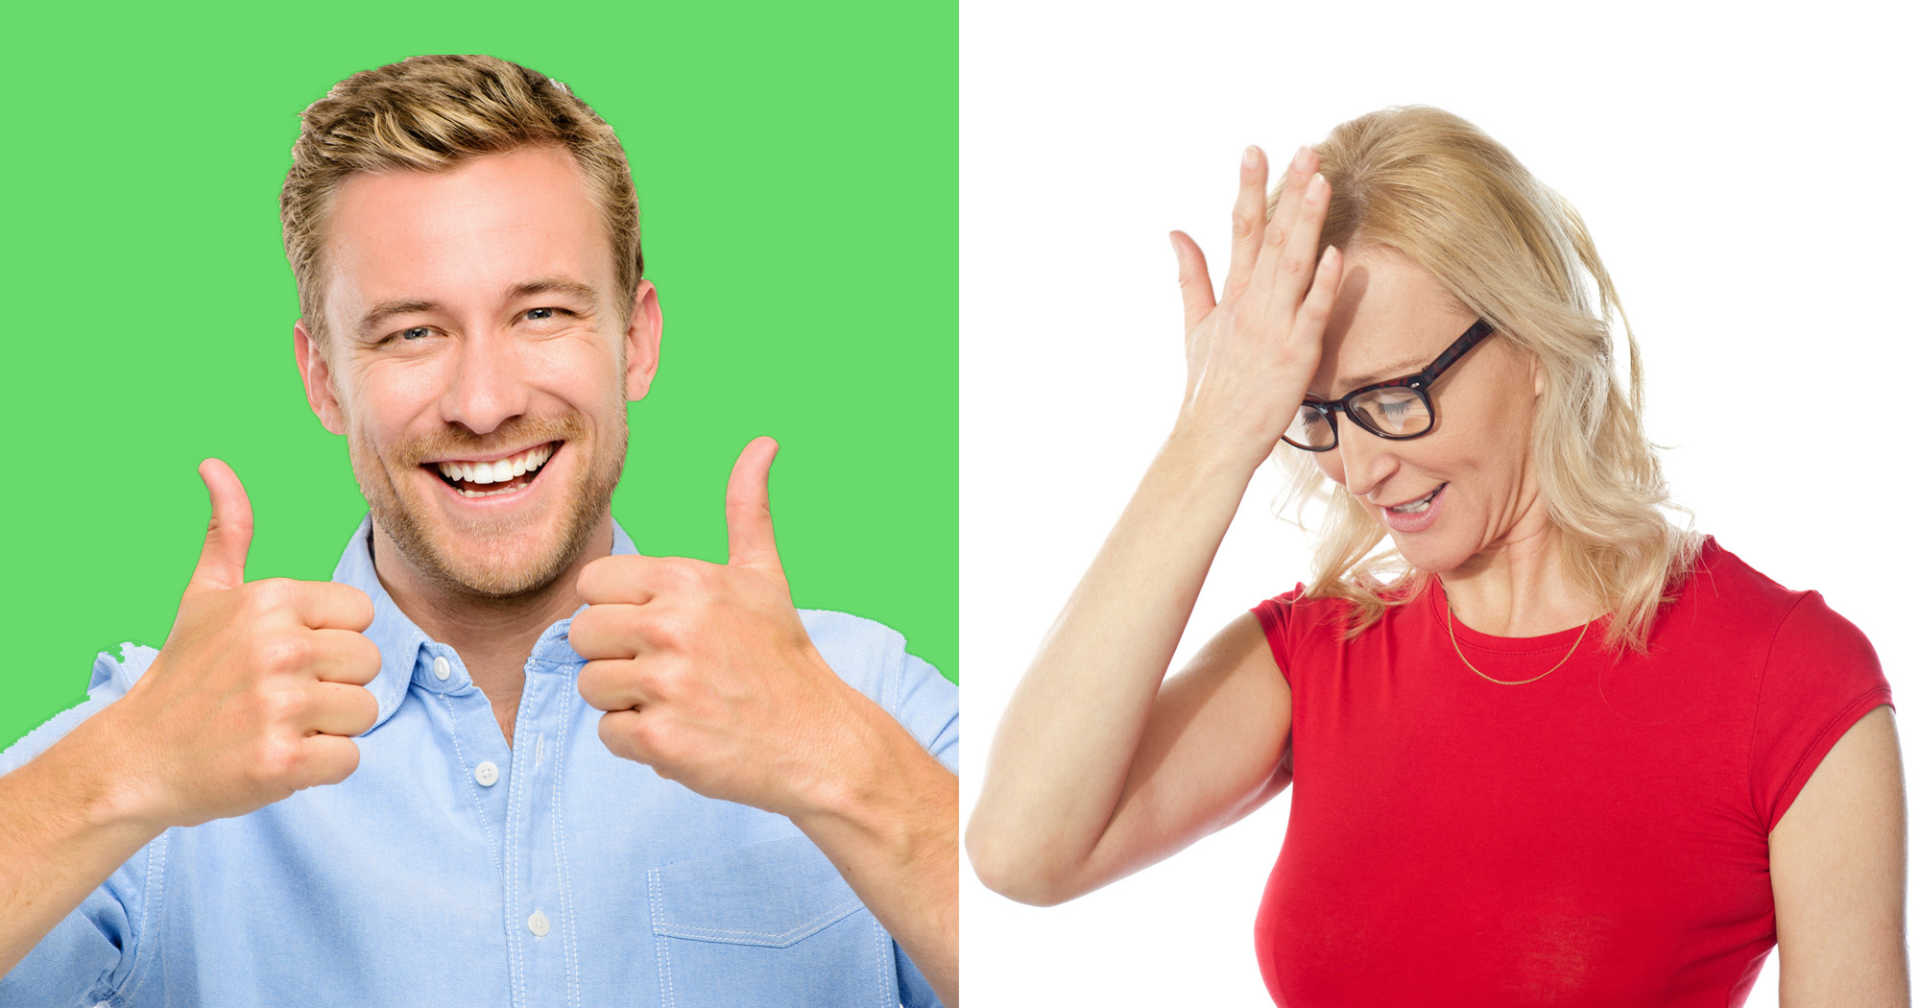 Guy giving thumbs up with a green background and woman with hand on head with white background